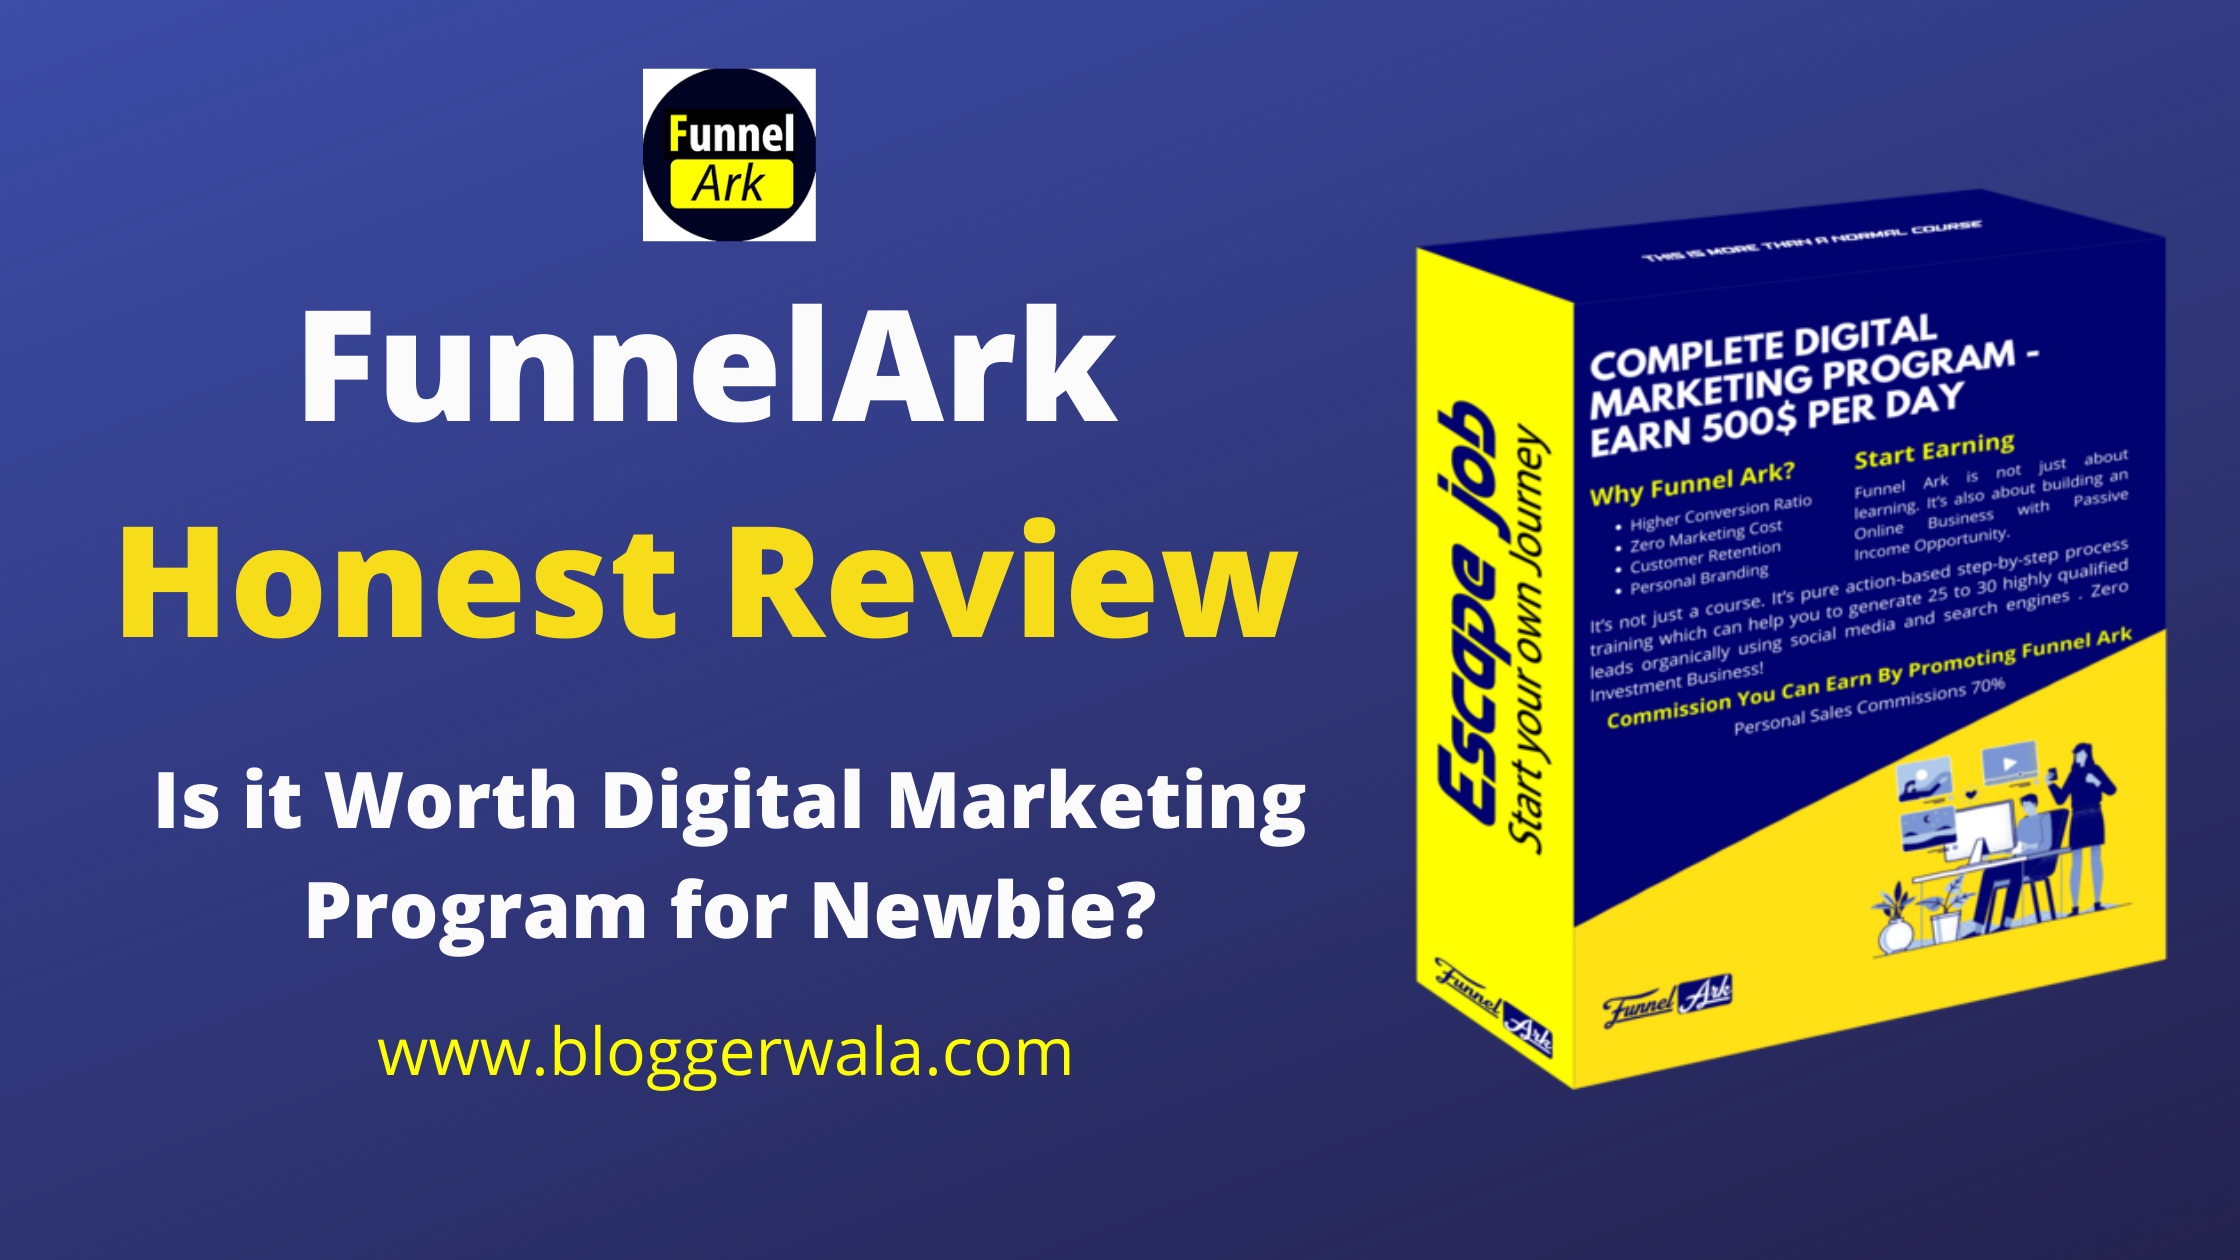 FunnelArk is the most popular digital marketing program online